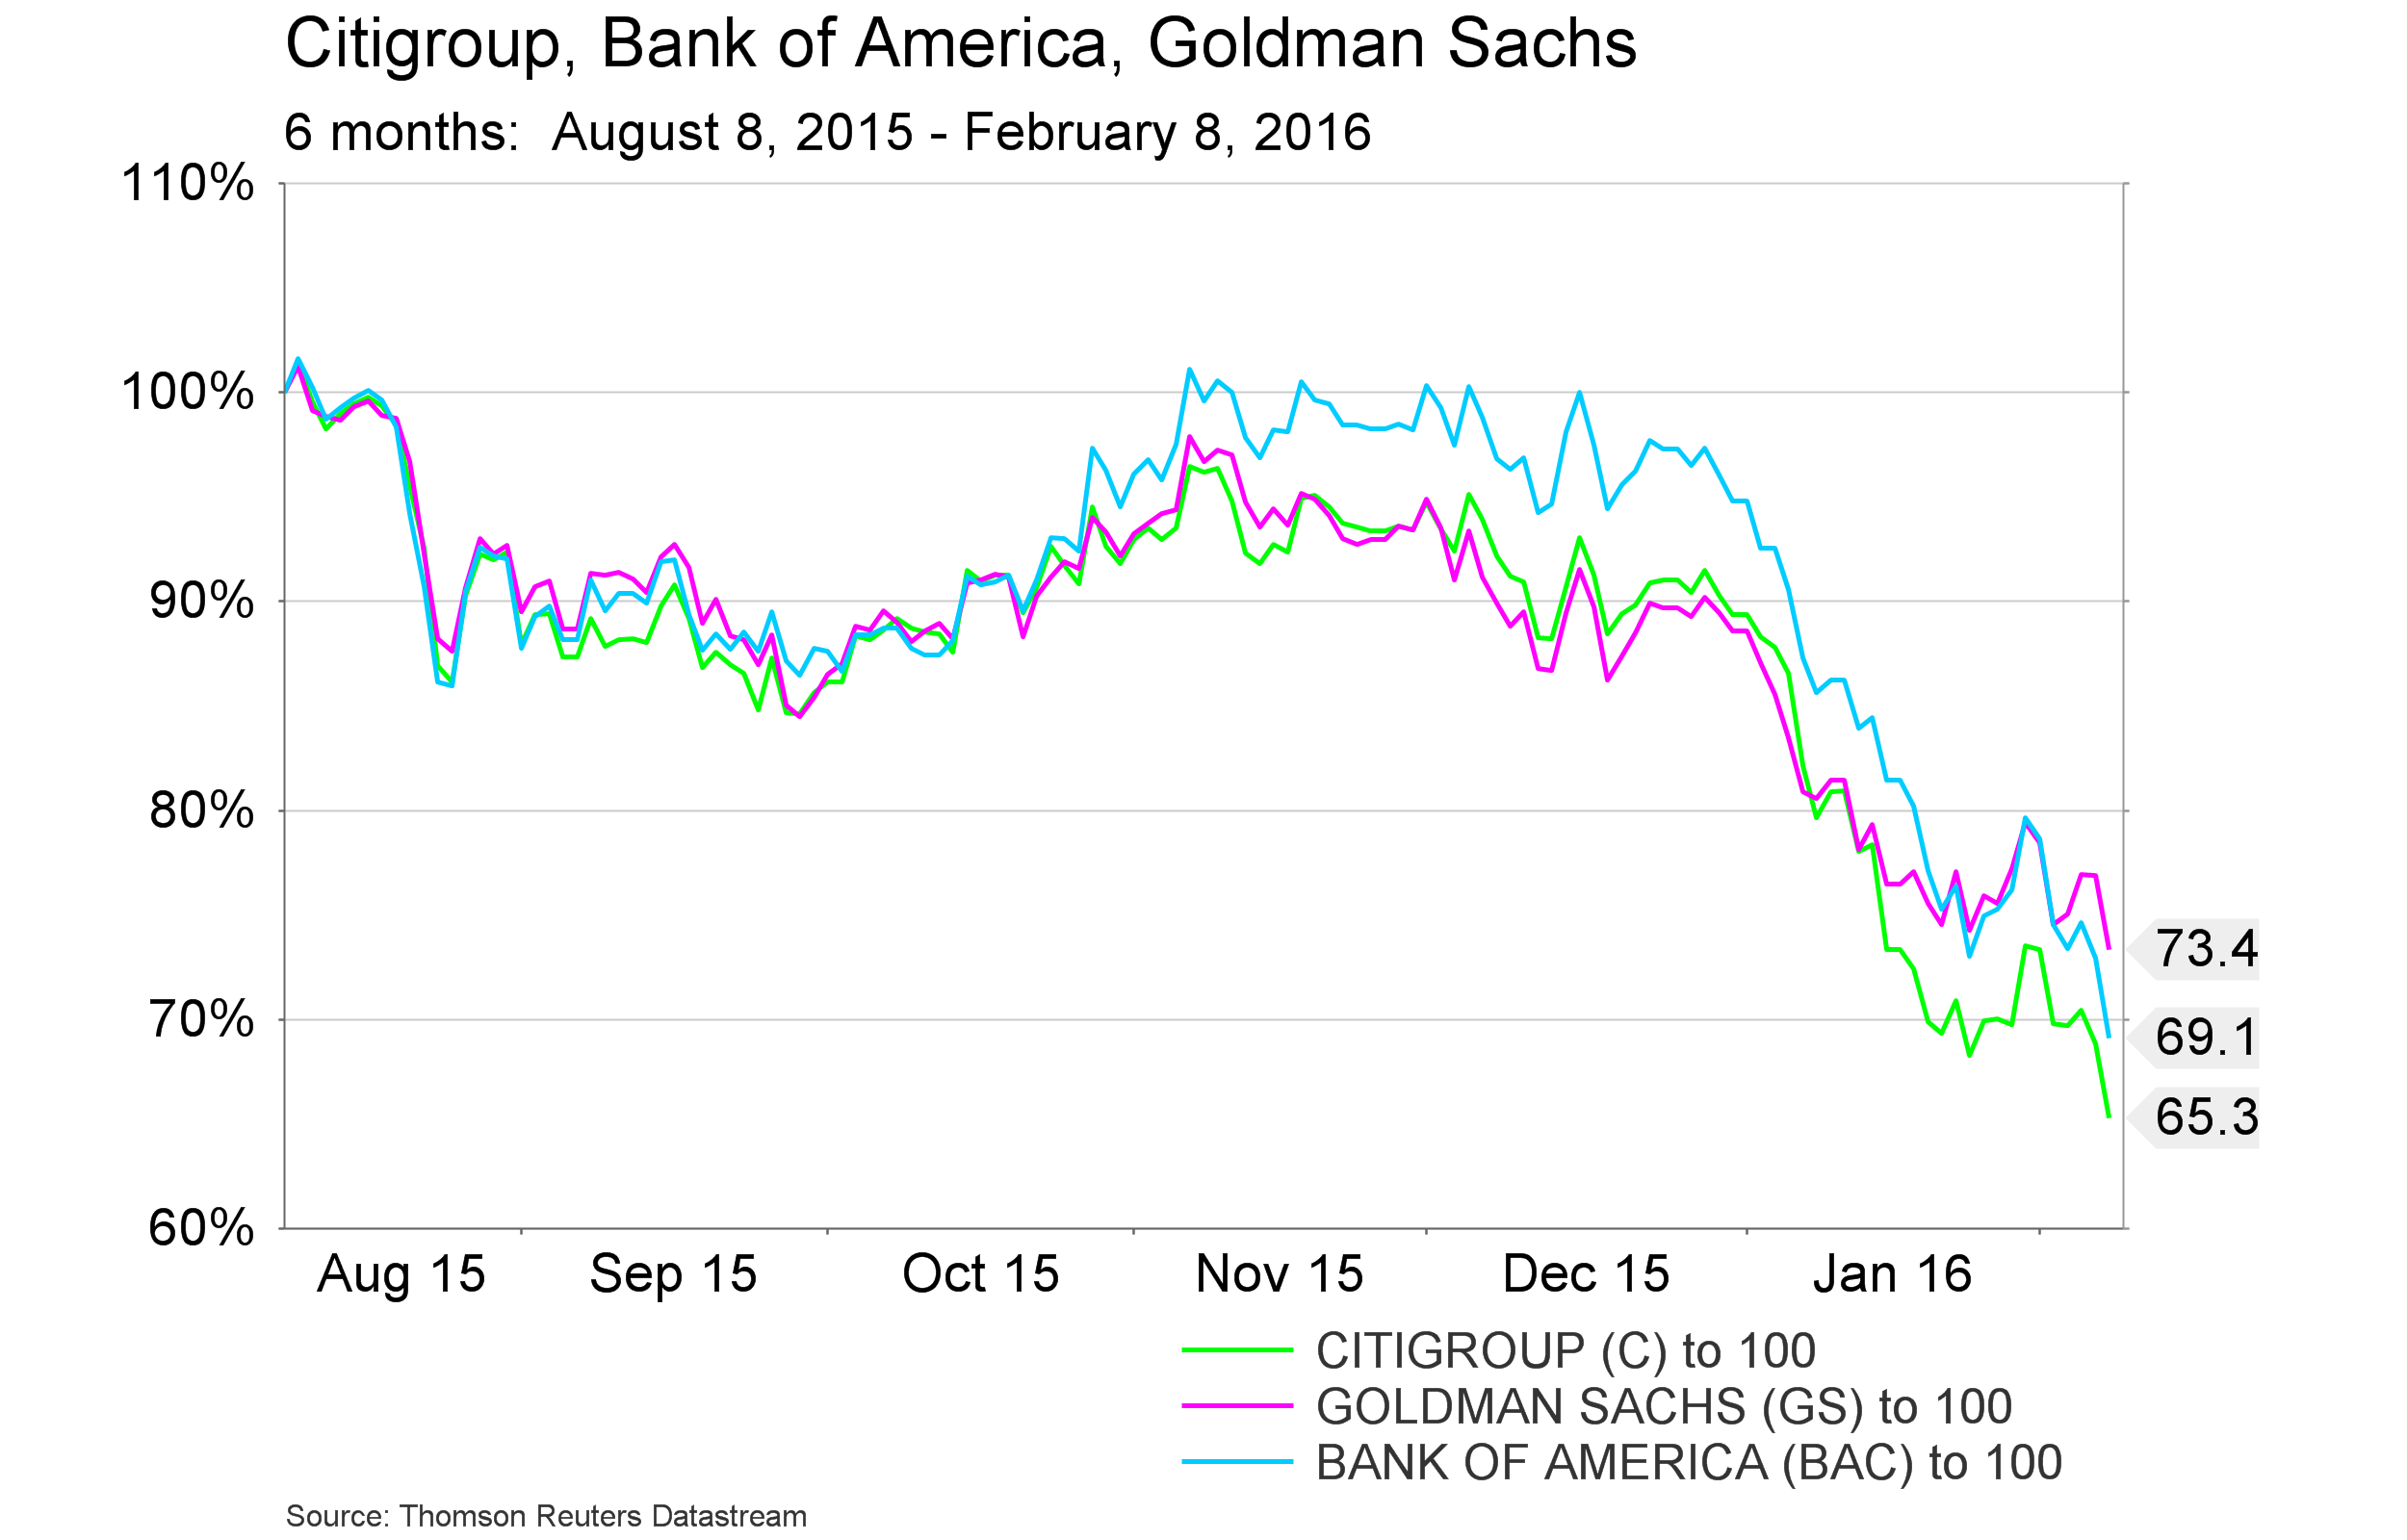 Feb. 11, 2016 - 3 US banks - 6 months